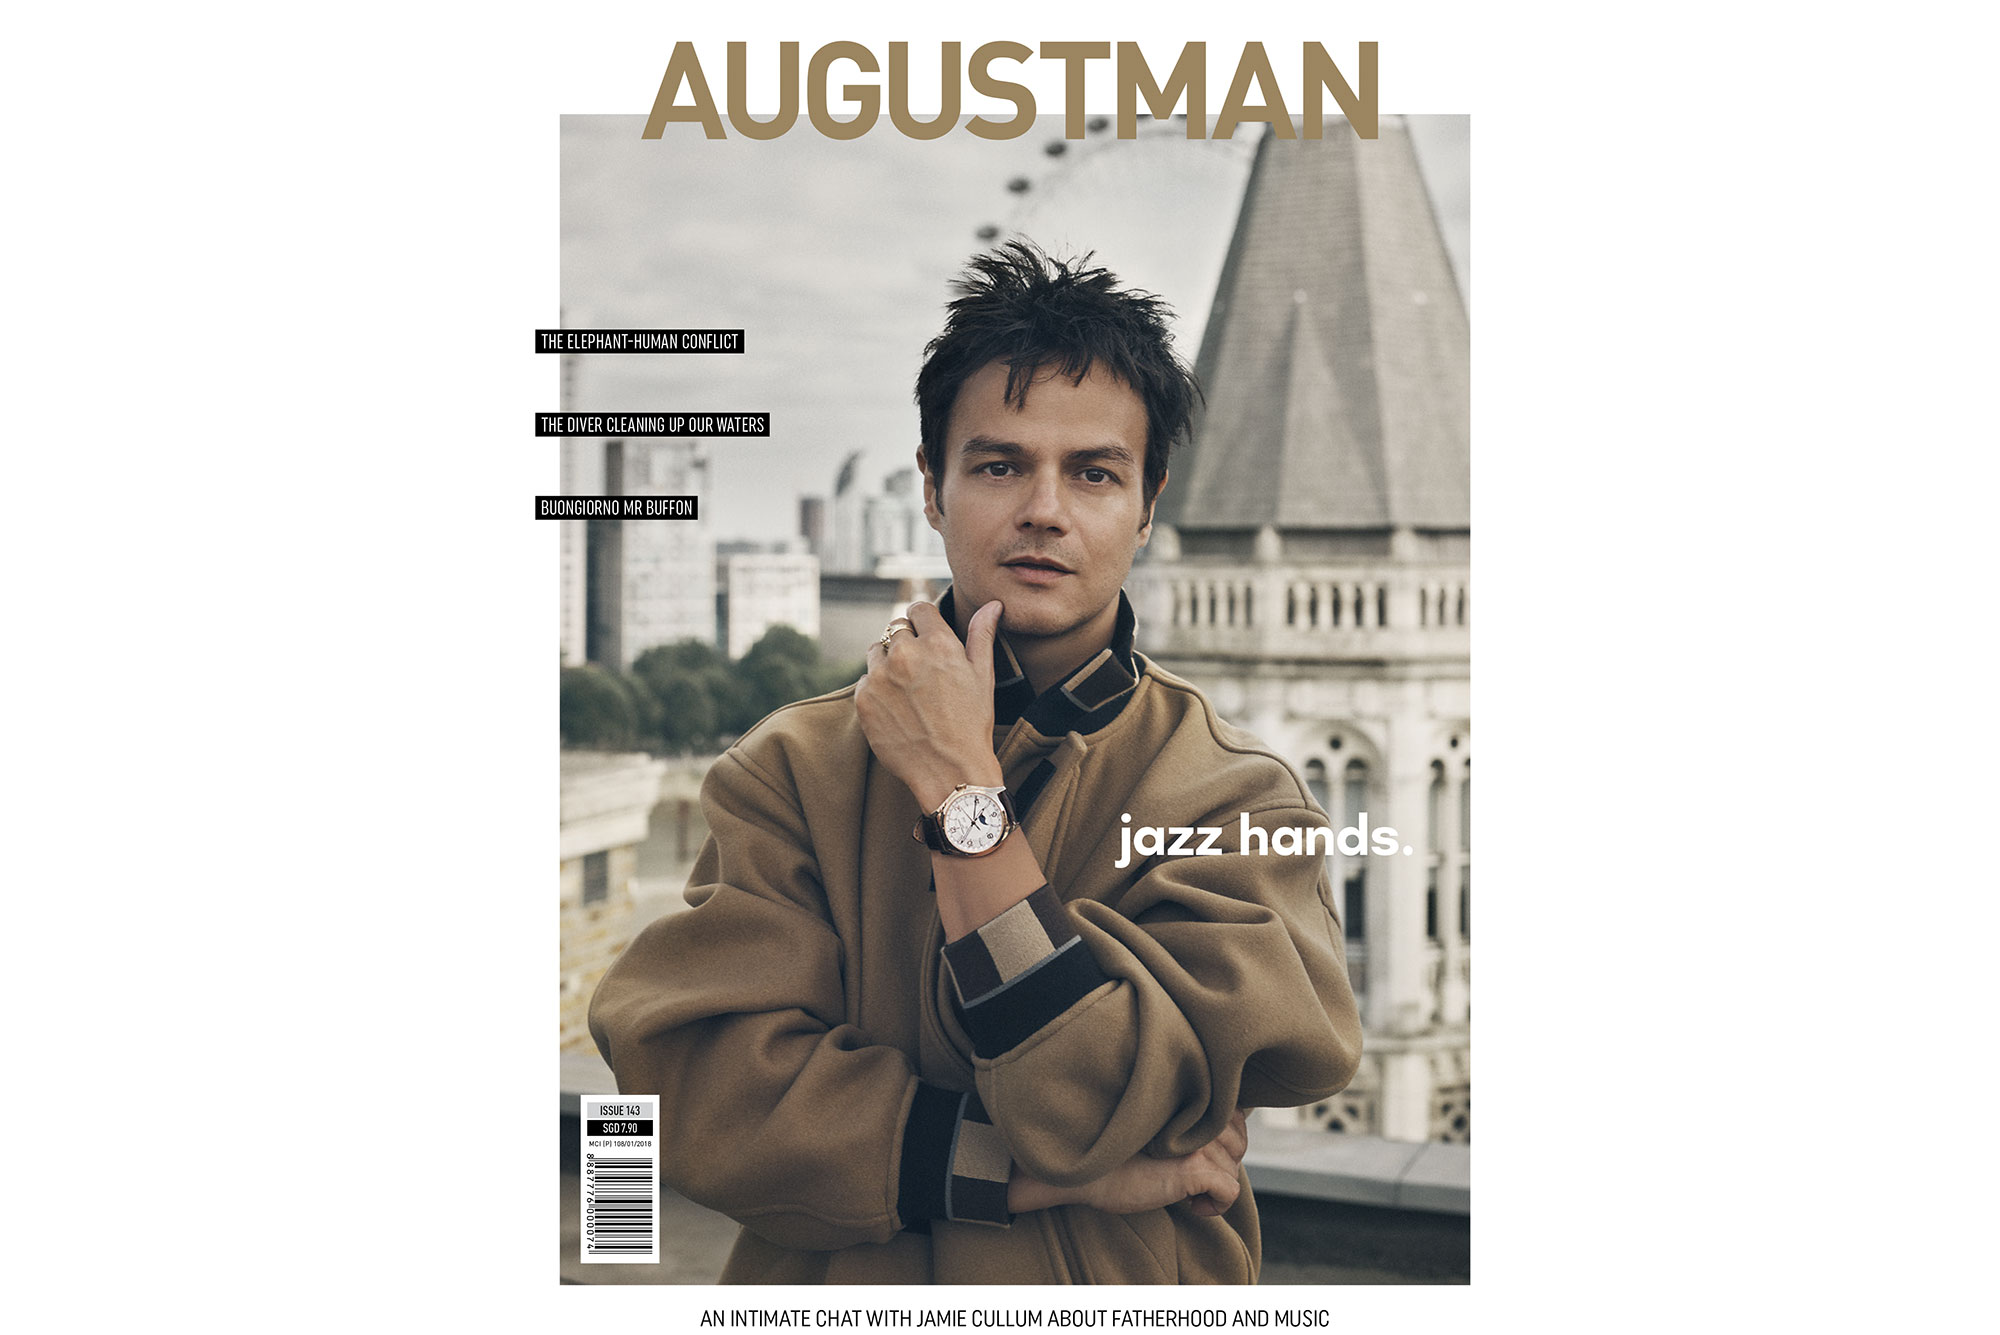 Jamie Cullum for AUGUST MAN